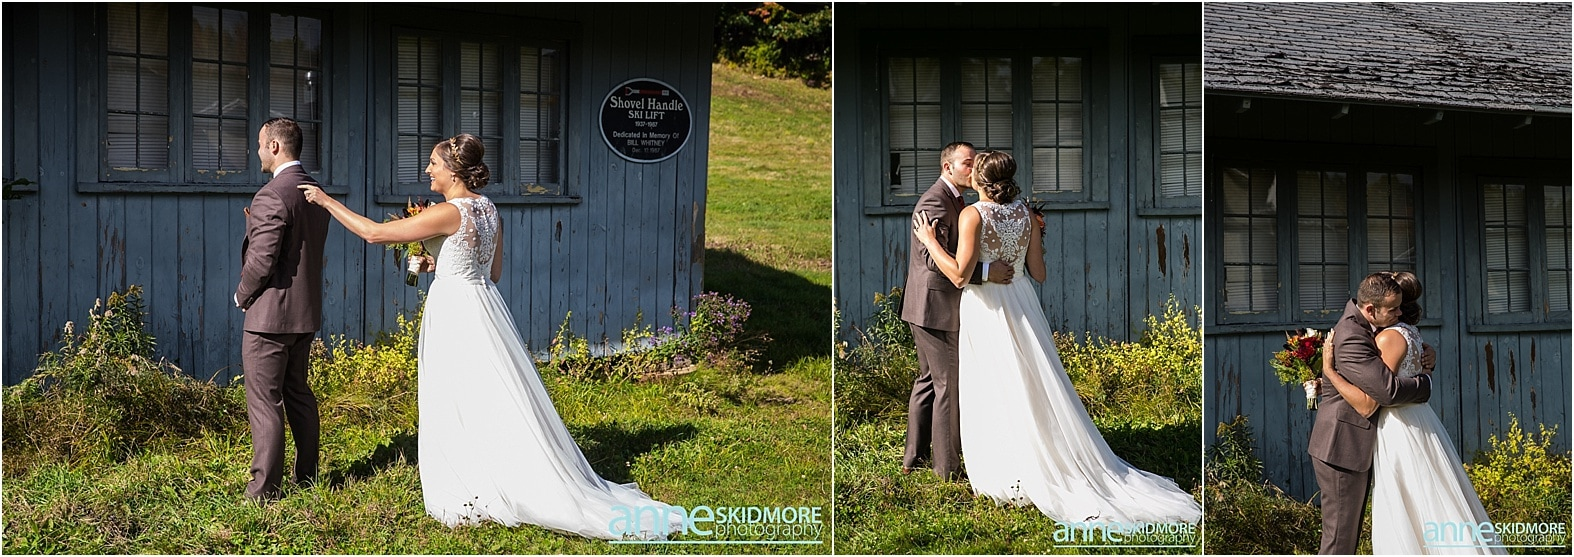 Whitneys_Inn_Weddings_014